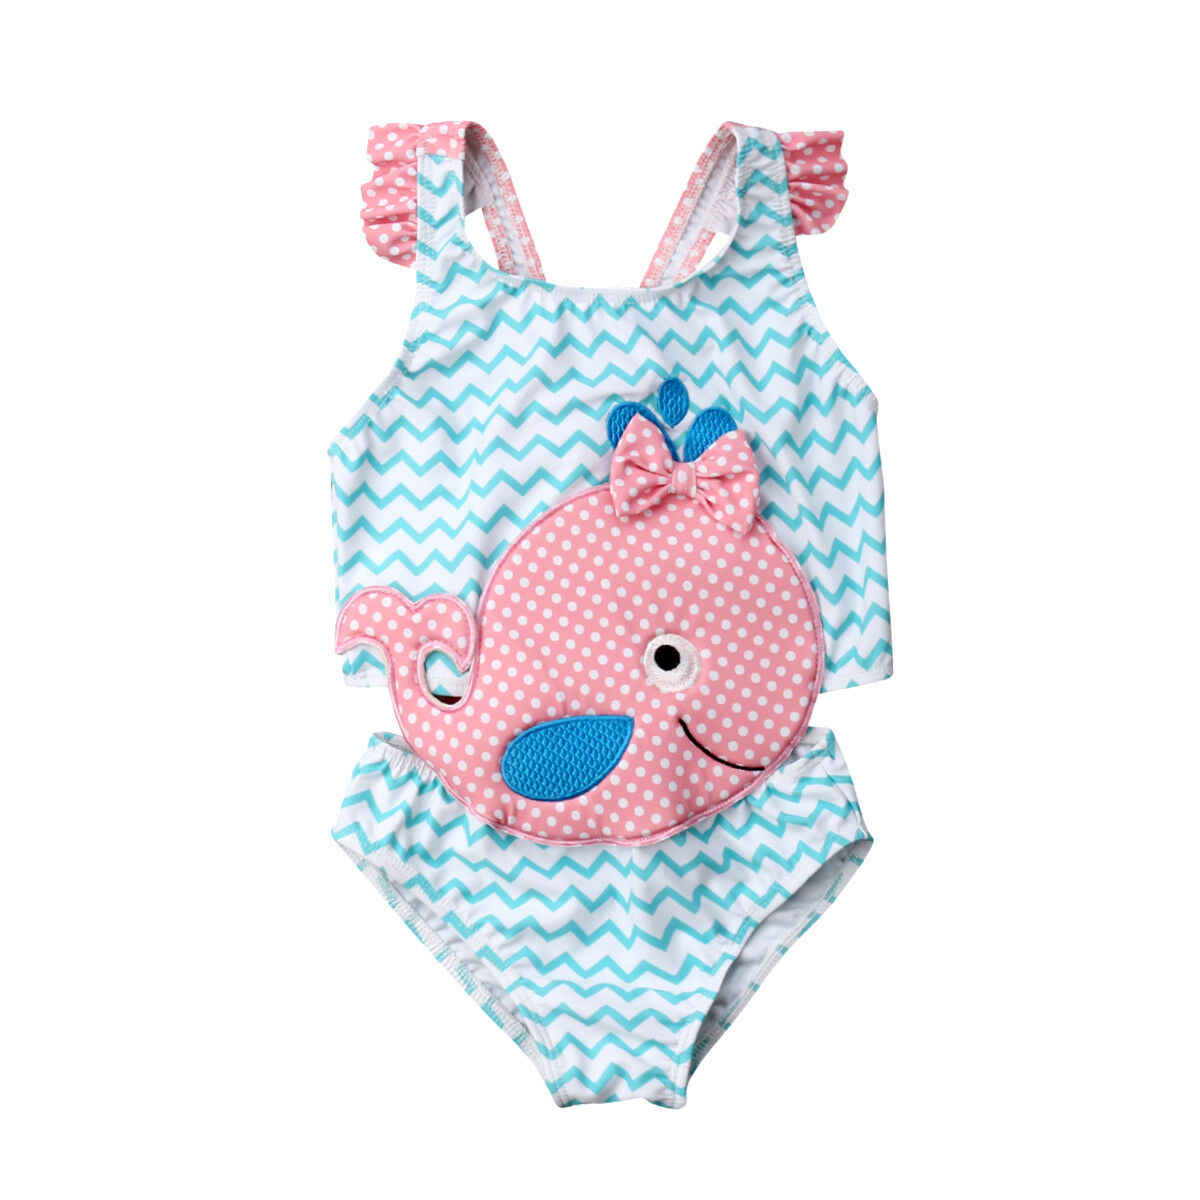 Emmababy Toddler Baby Girls Goldfish Swimwear Cute Swimwear Swimsuit Beachwear Bathing Suit One Piece Girls Clothes